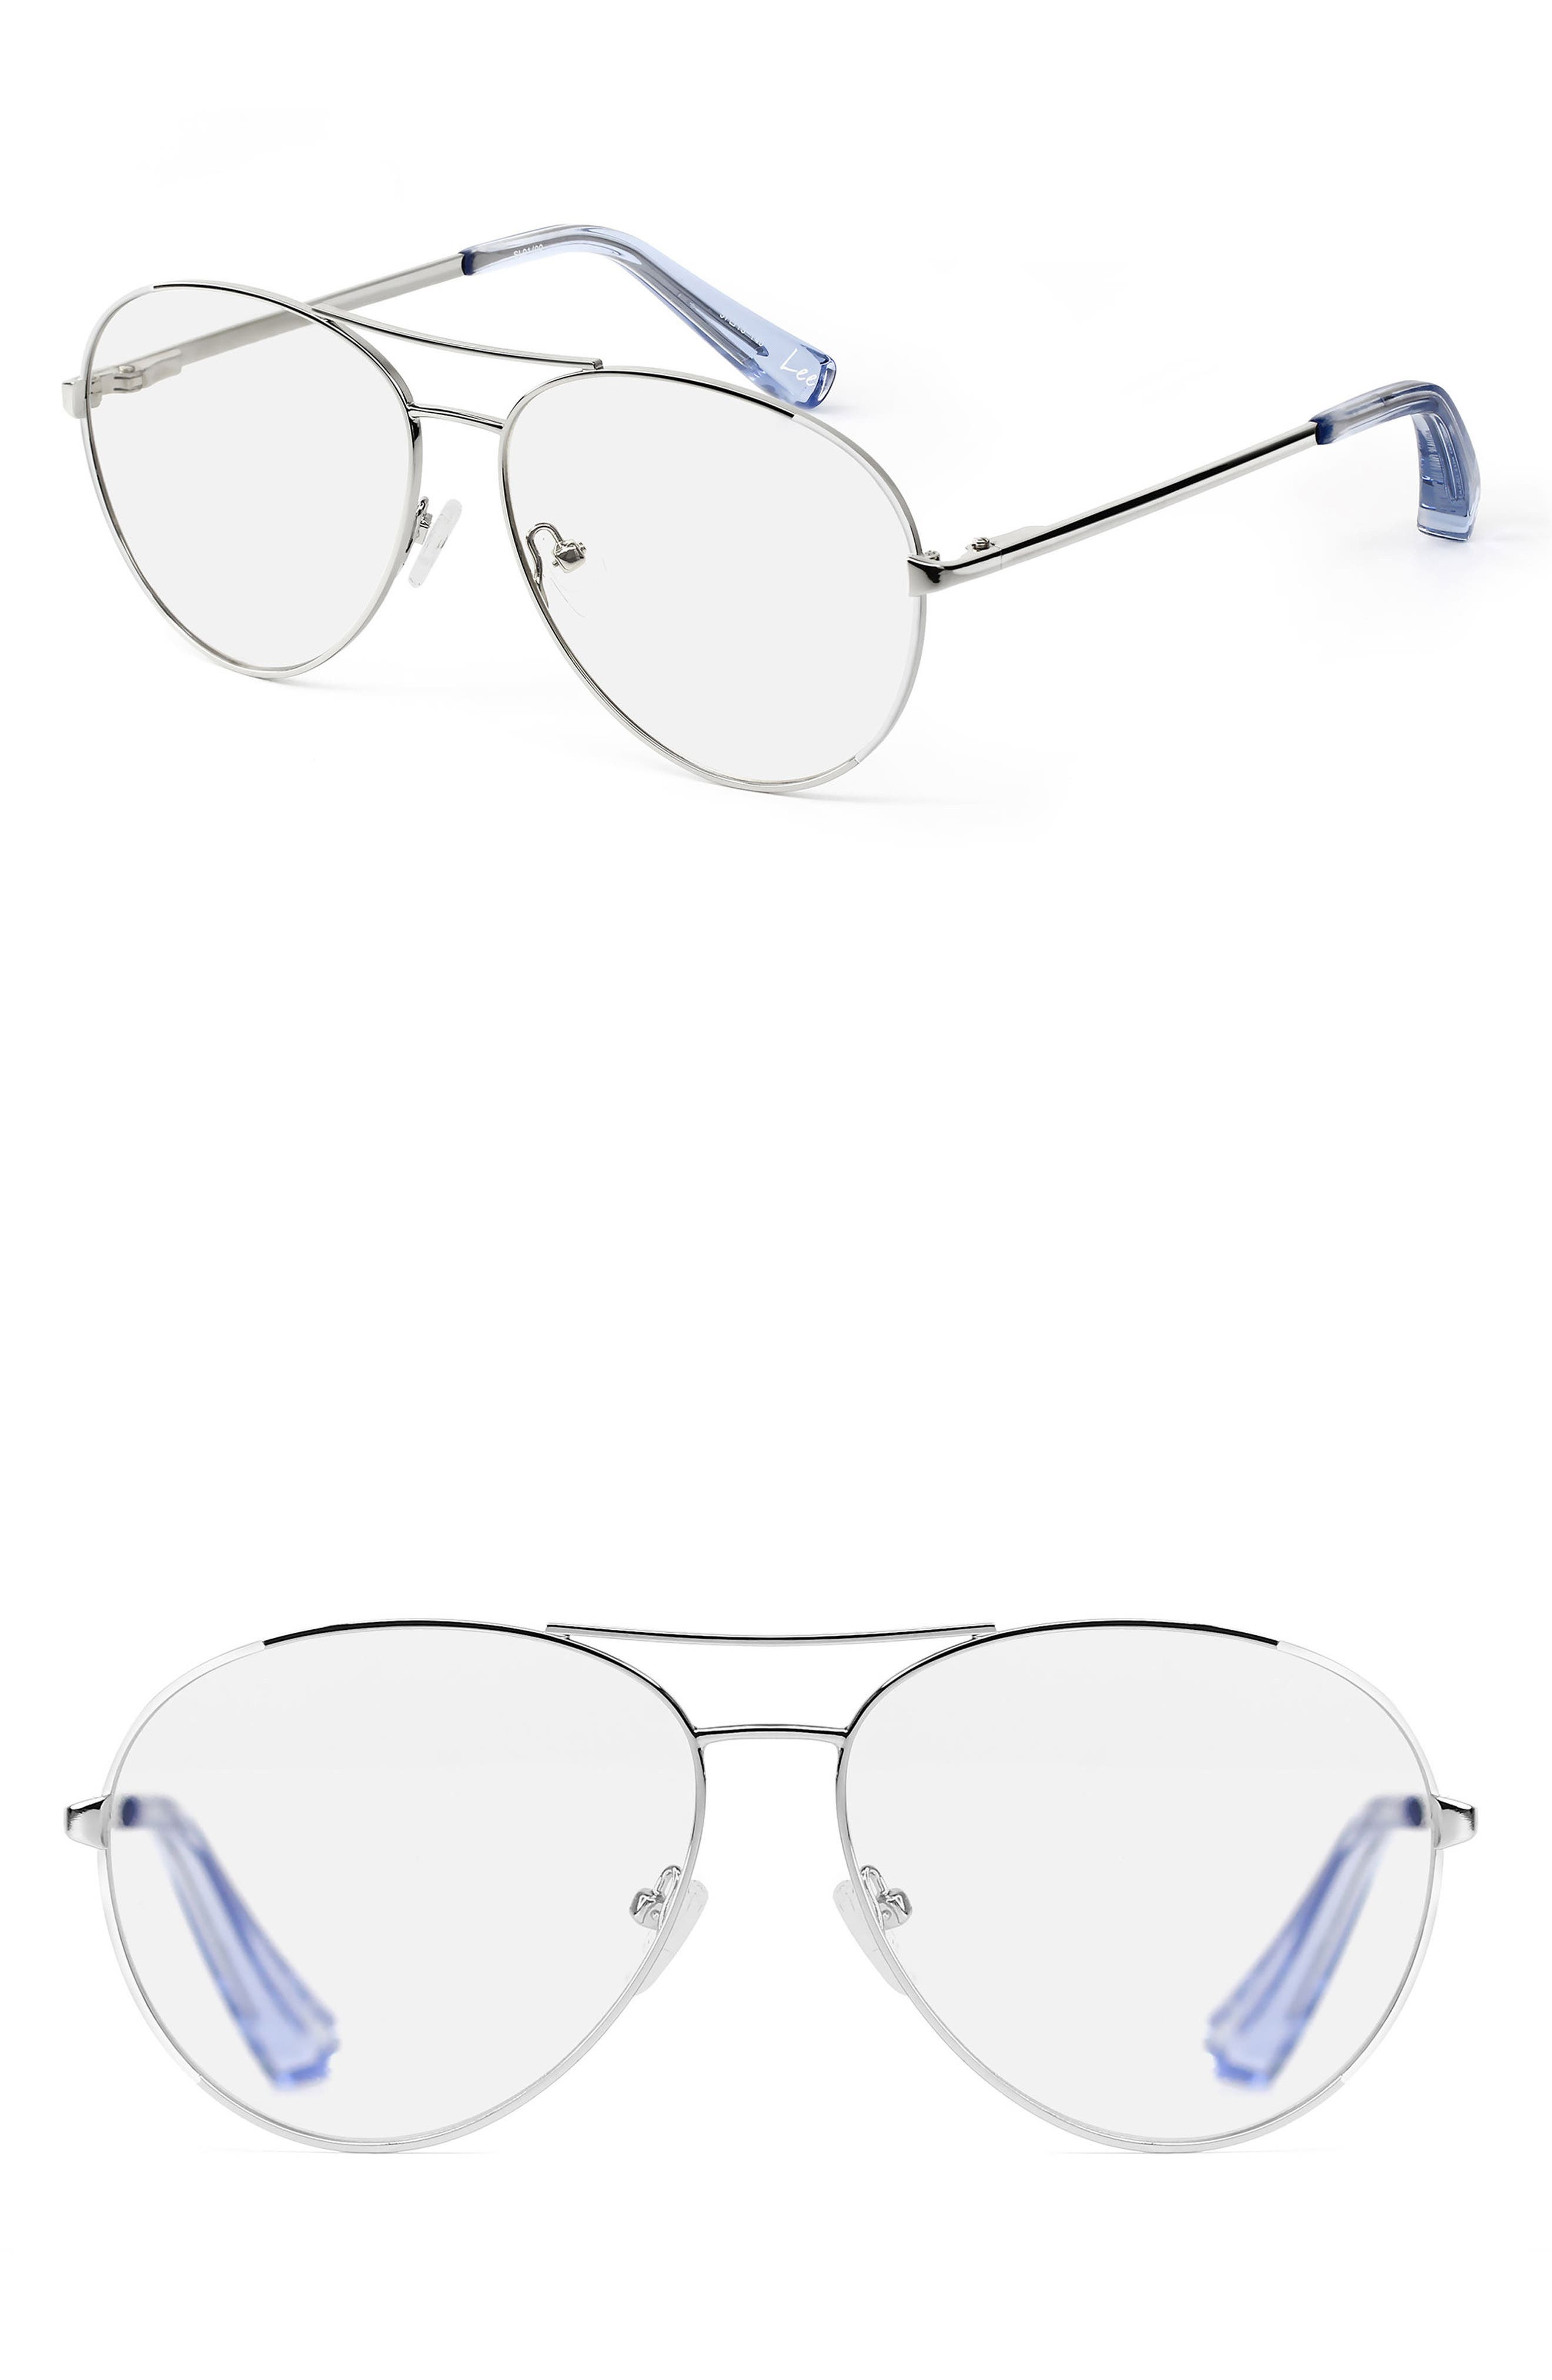 Lee 57mm Aviator Optical Glasses,                             Main thumbnail 1, color,                             040